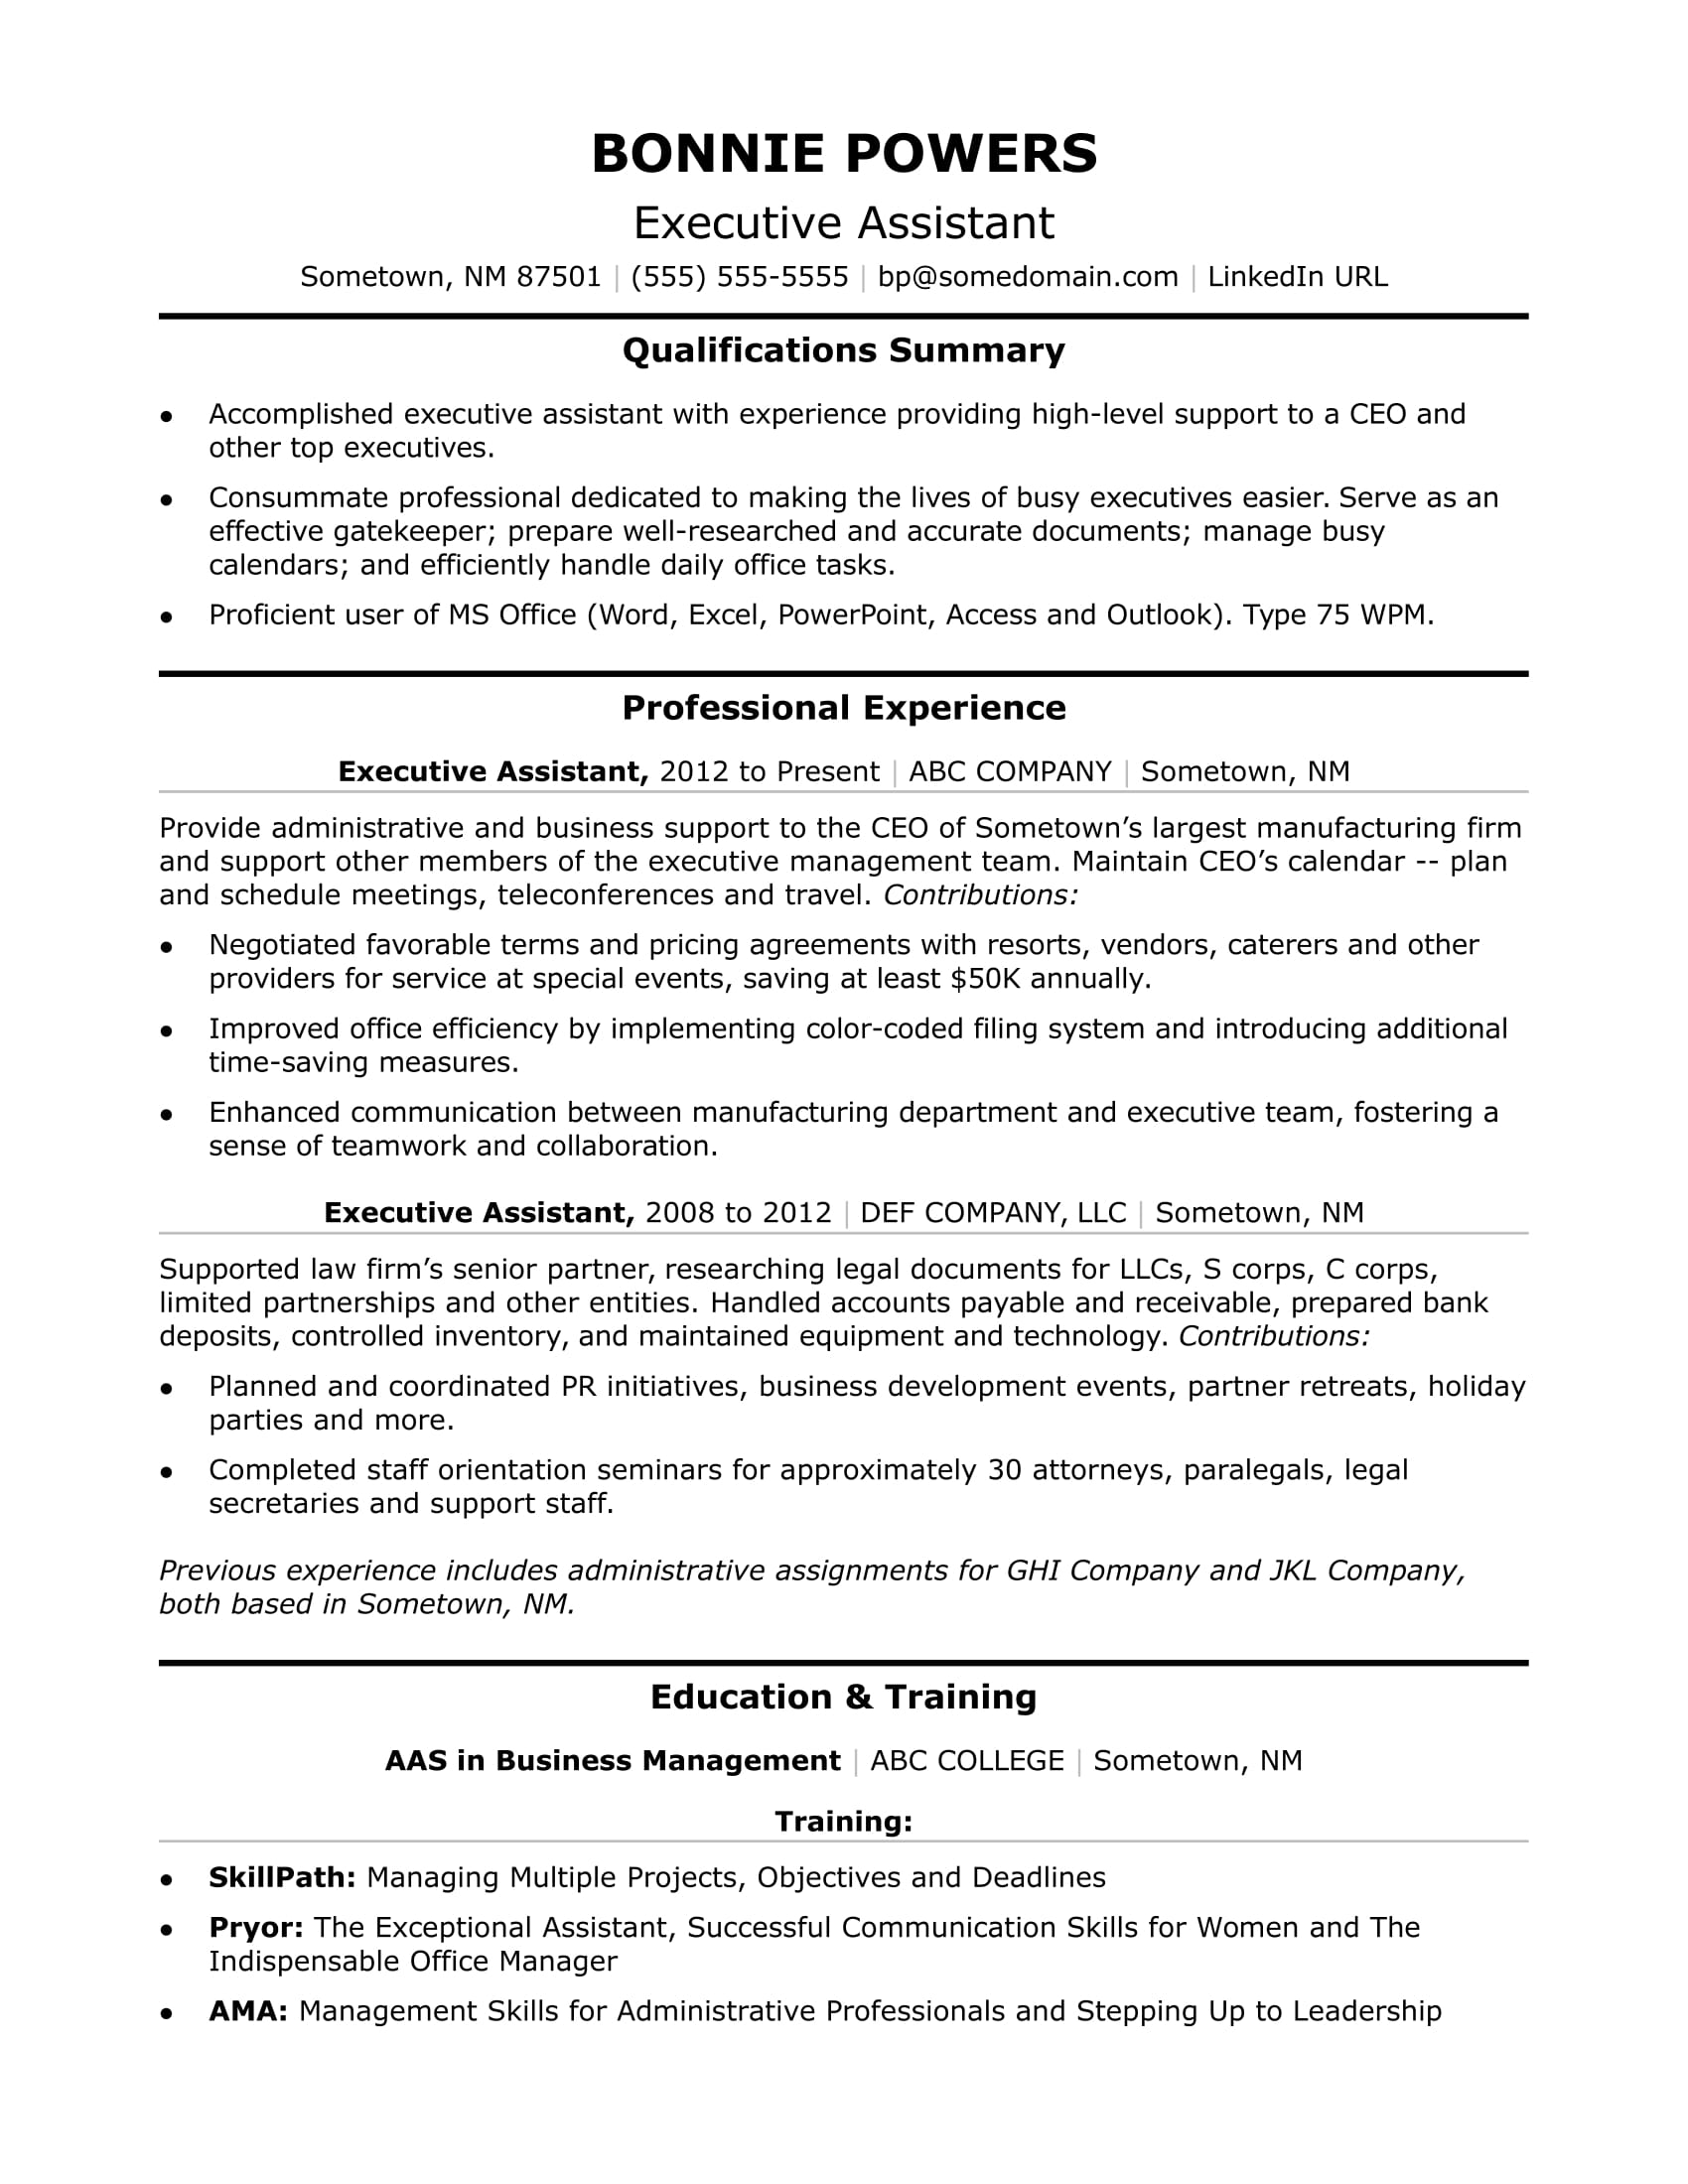 Executive Administrative Assistant Resume Sample  Administrative Assistant Resume Skills